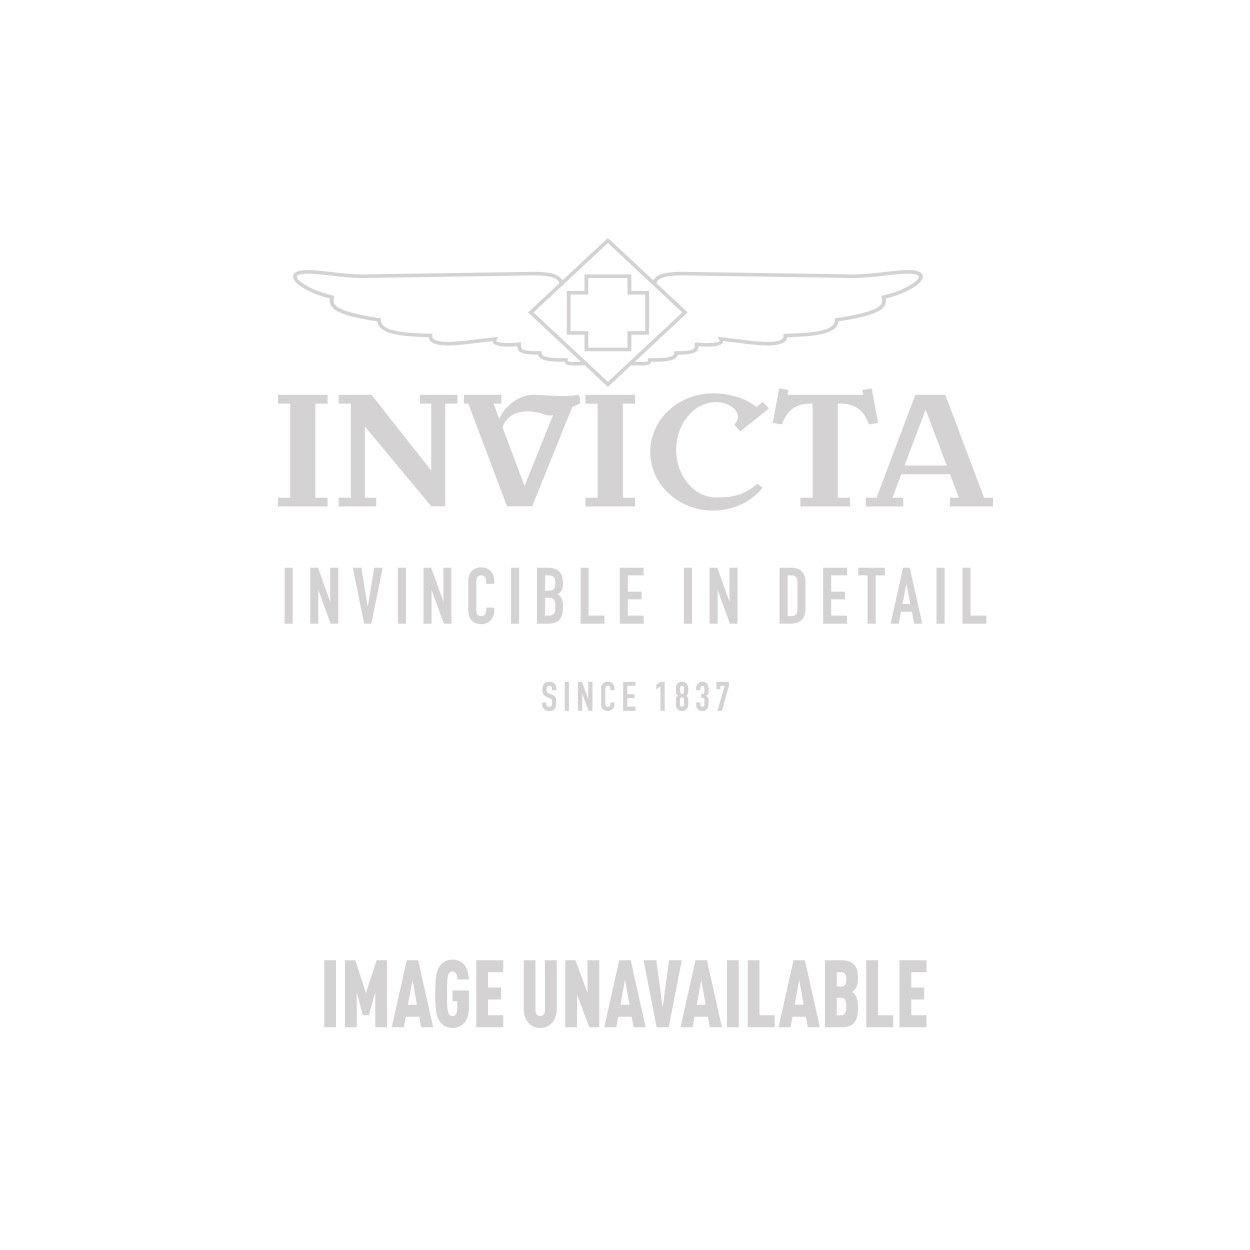 Invicta Pro Diver Swiss Movement Quartz Watch - Gold case with Gold tone Stainless Steel band - Model 10597